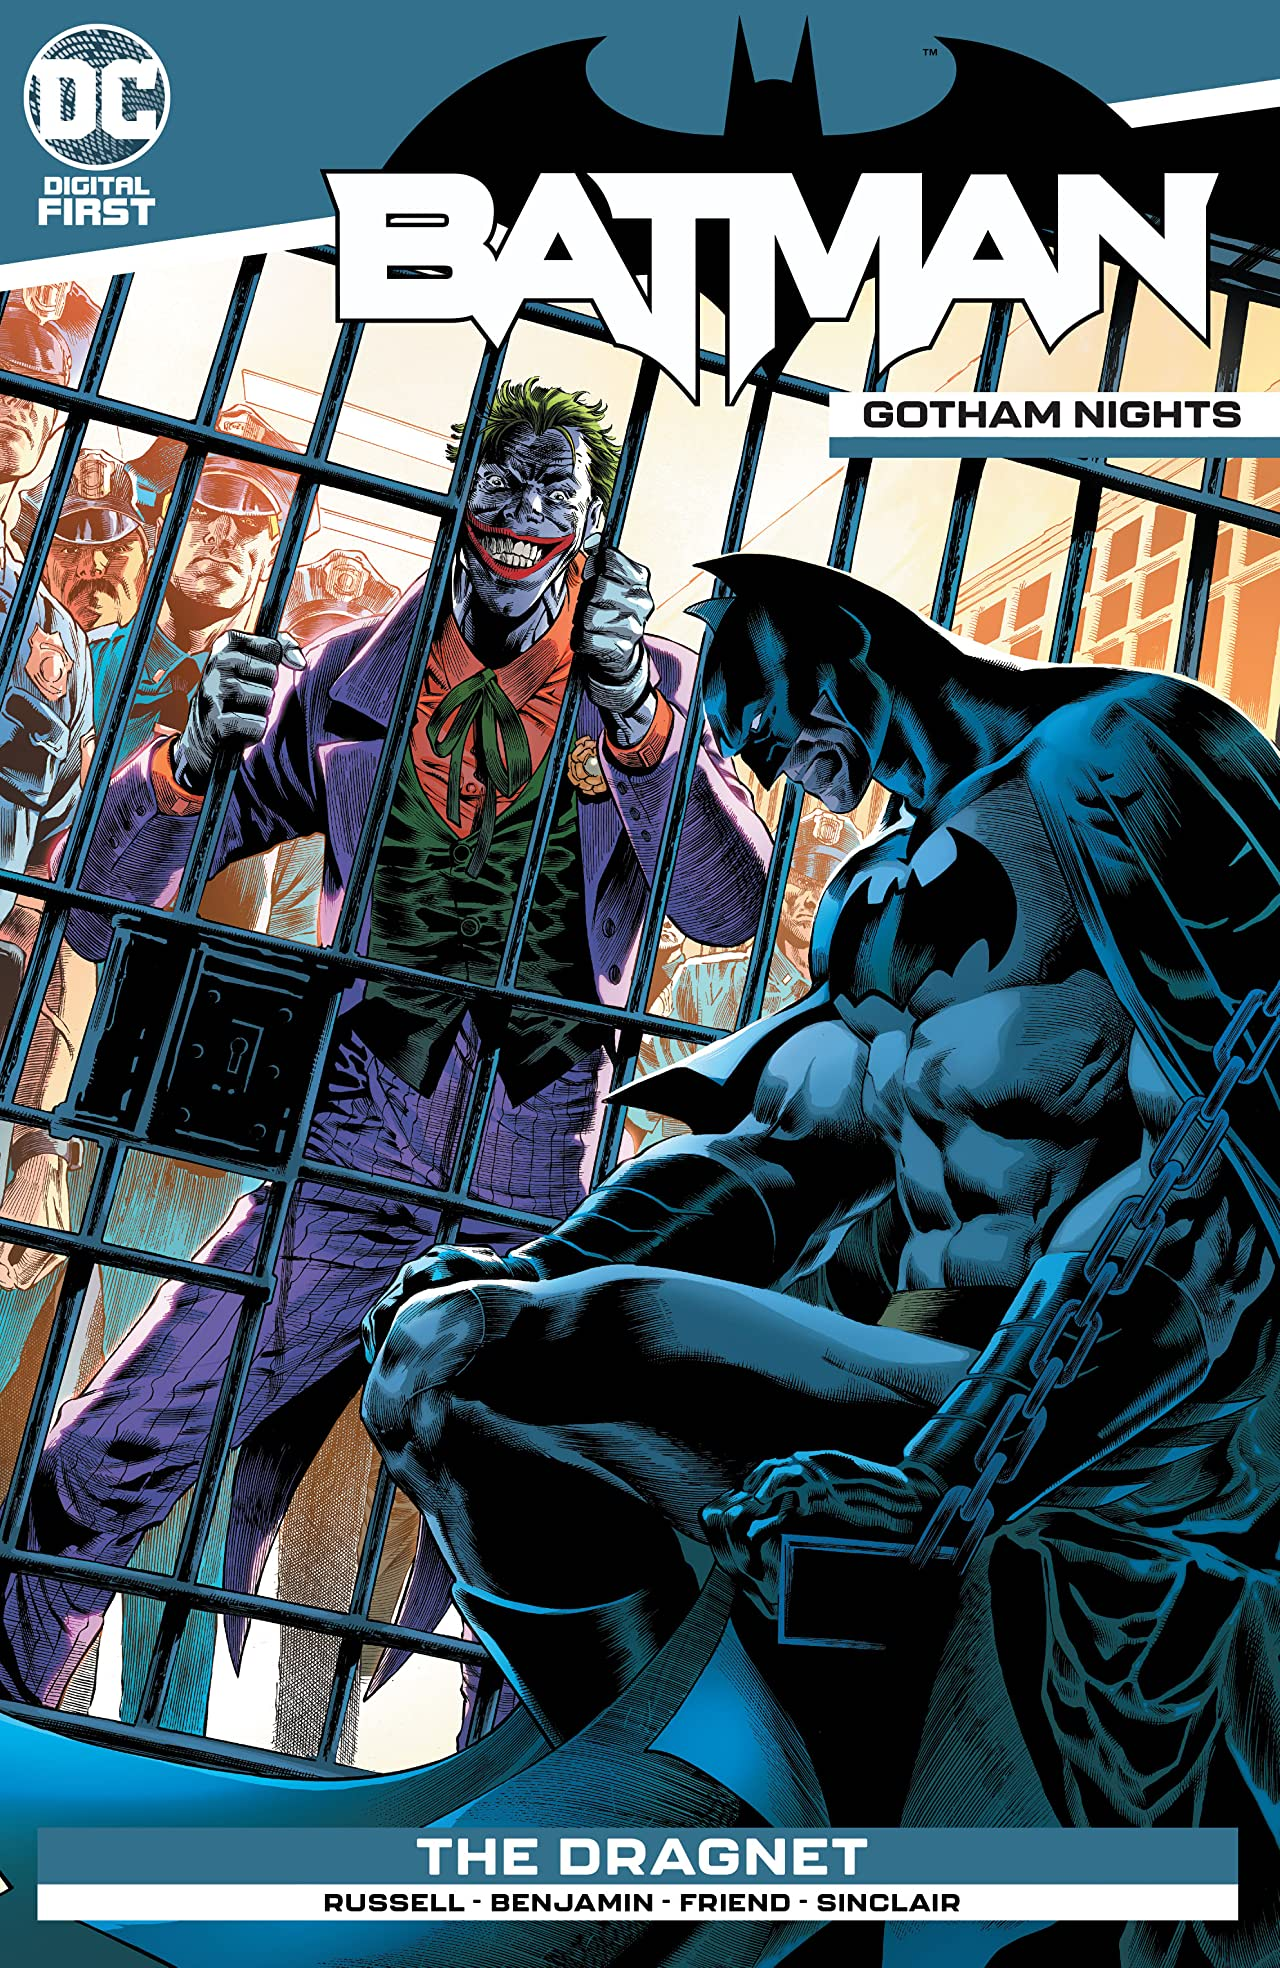 Batman: Gotham Nights Vol 1 4 (Digital)